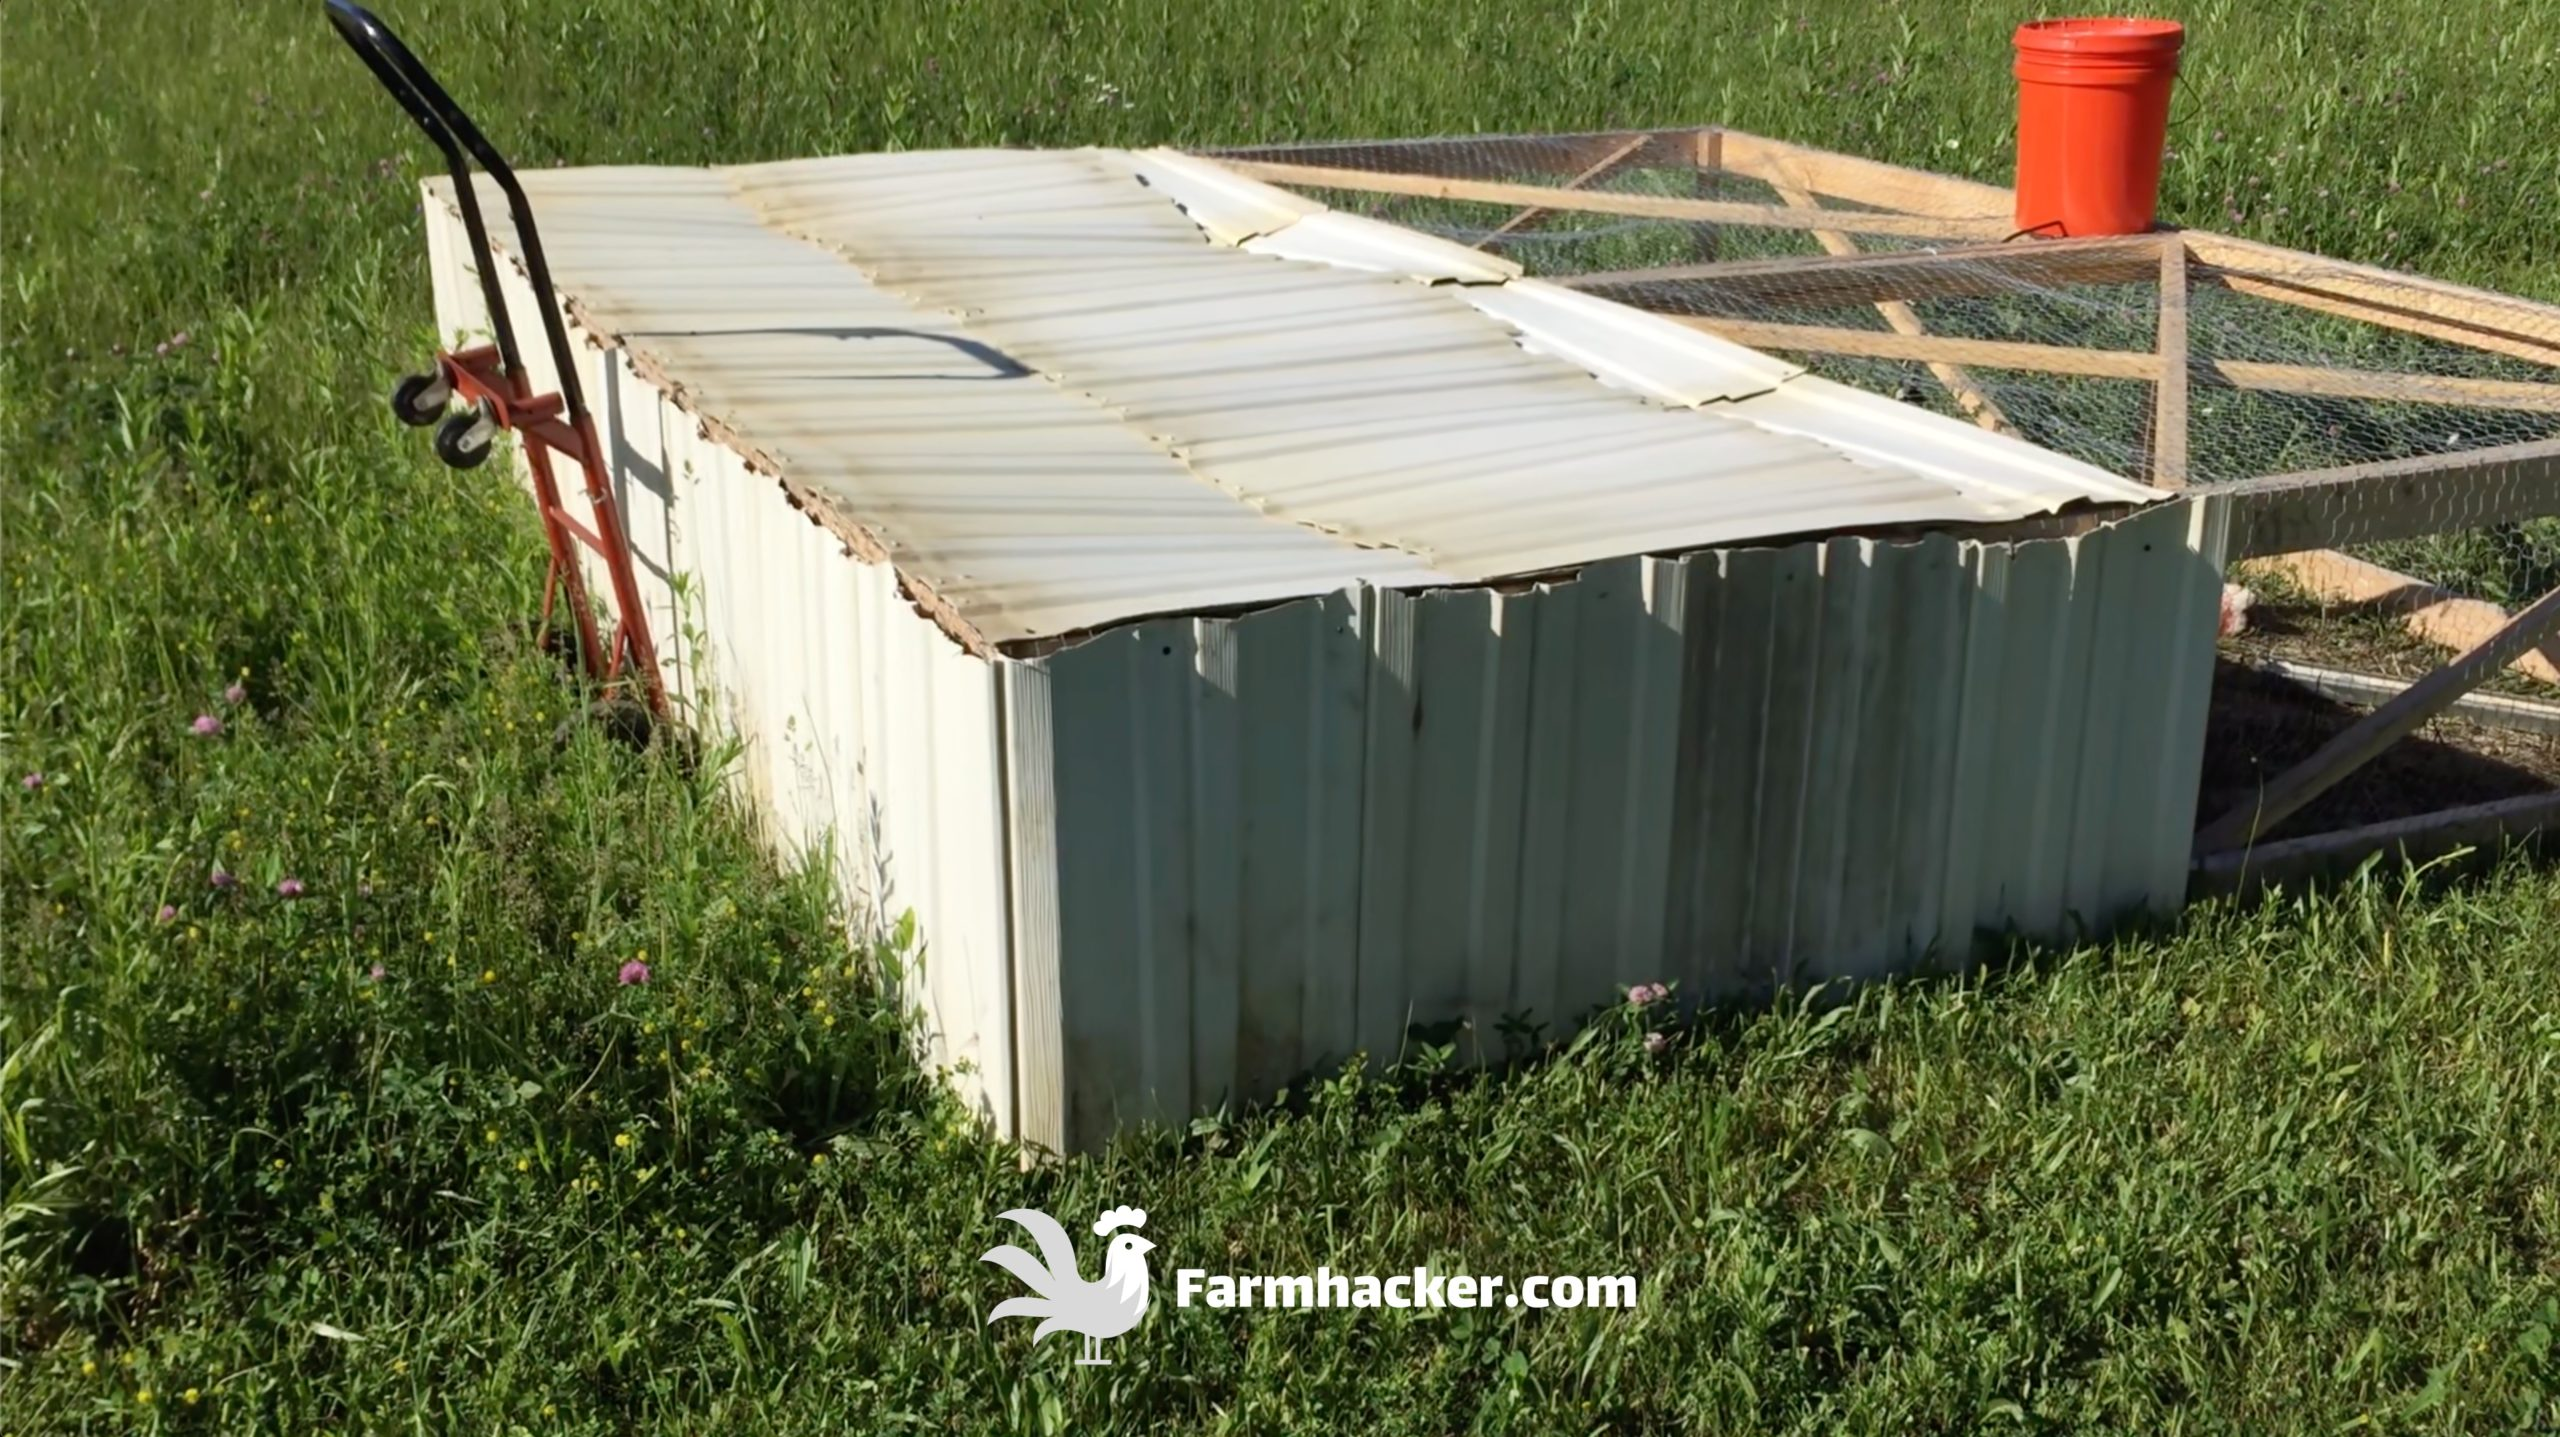 How to Build a Joel Salatin Style Chicken Tractor Step 4.1